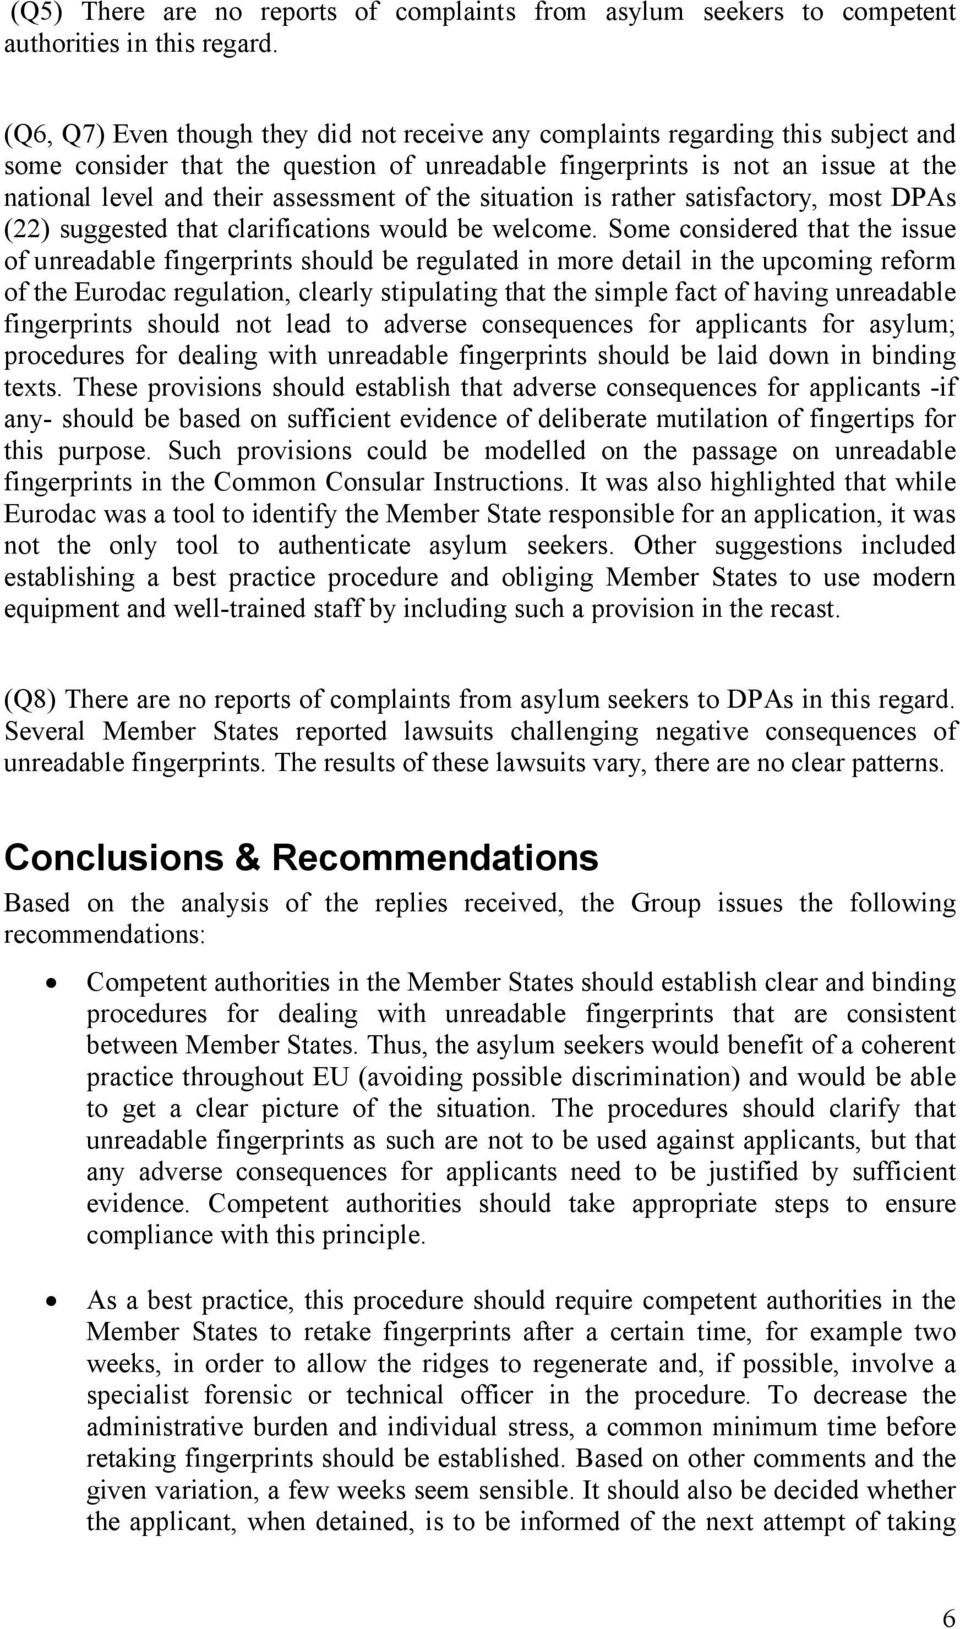 assessment of the situation is rather satisfactory, most DPAs (22) suggested that clarifications would be welcome.